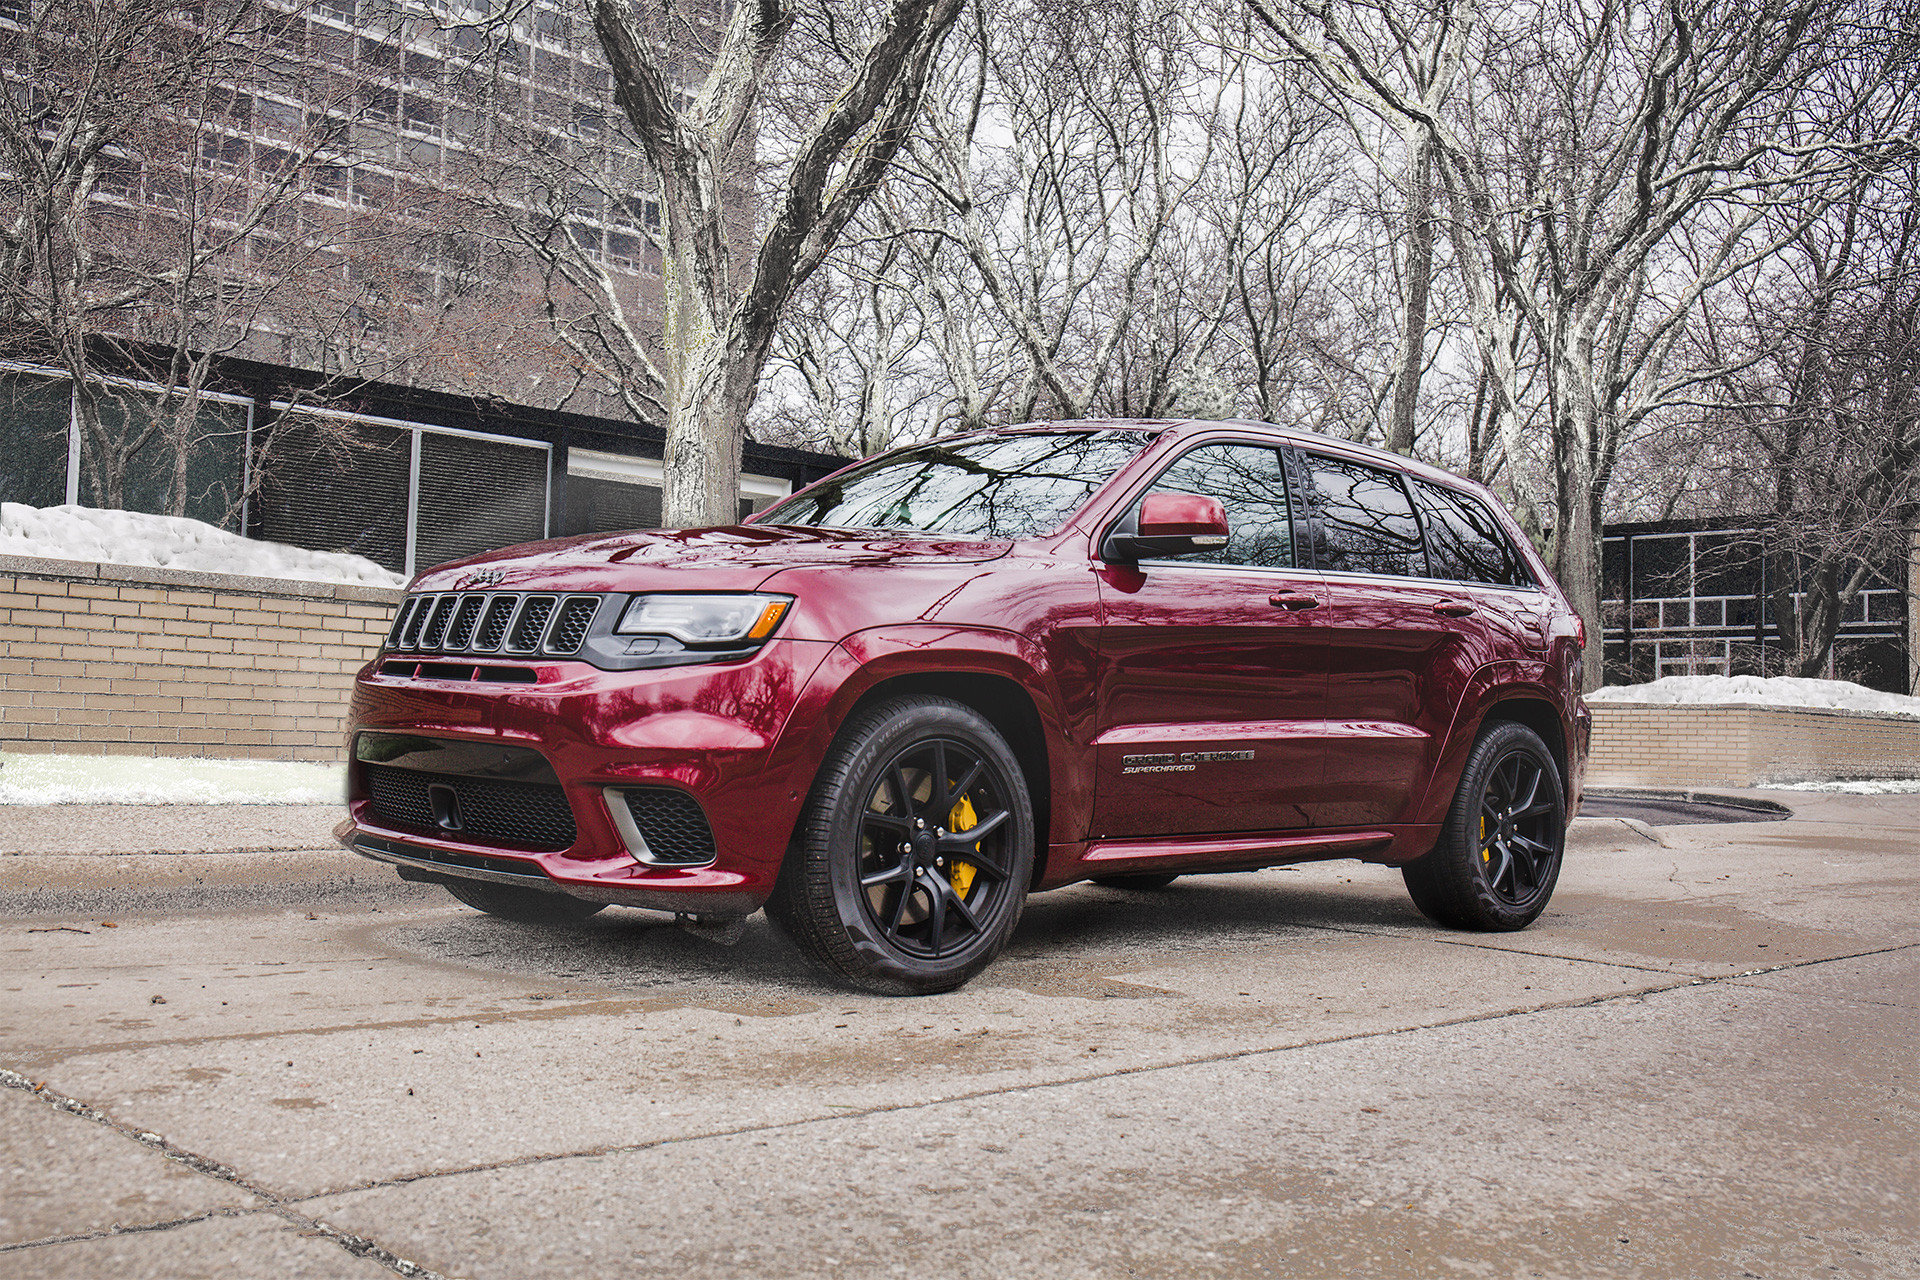 2018 Jeep Grand Cherokee SUV Trackhawk with 707 horsepower